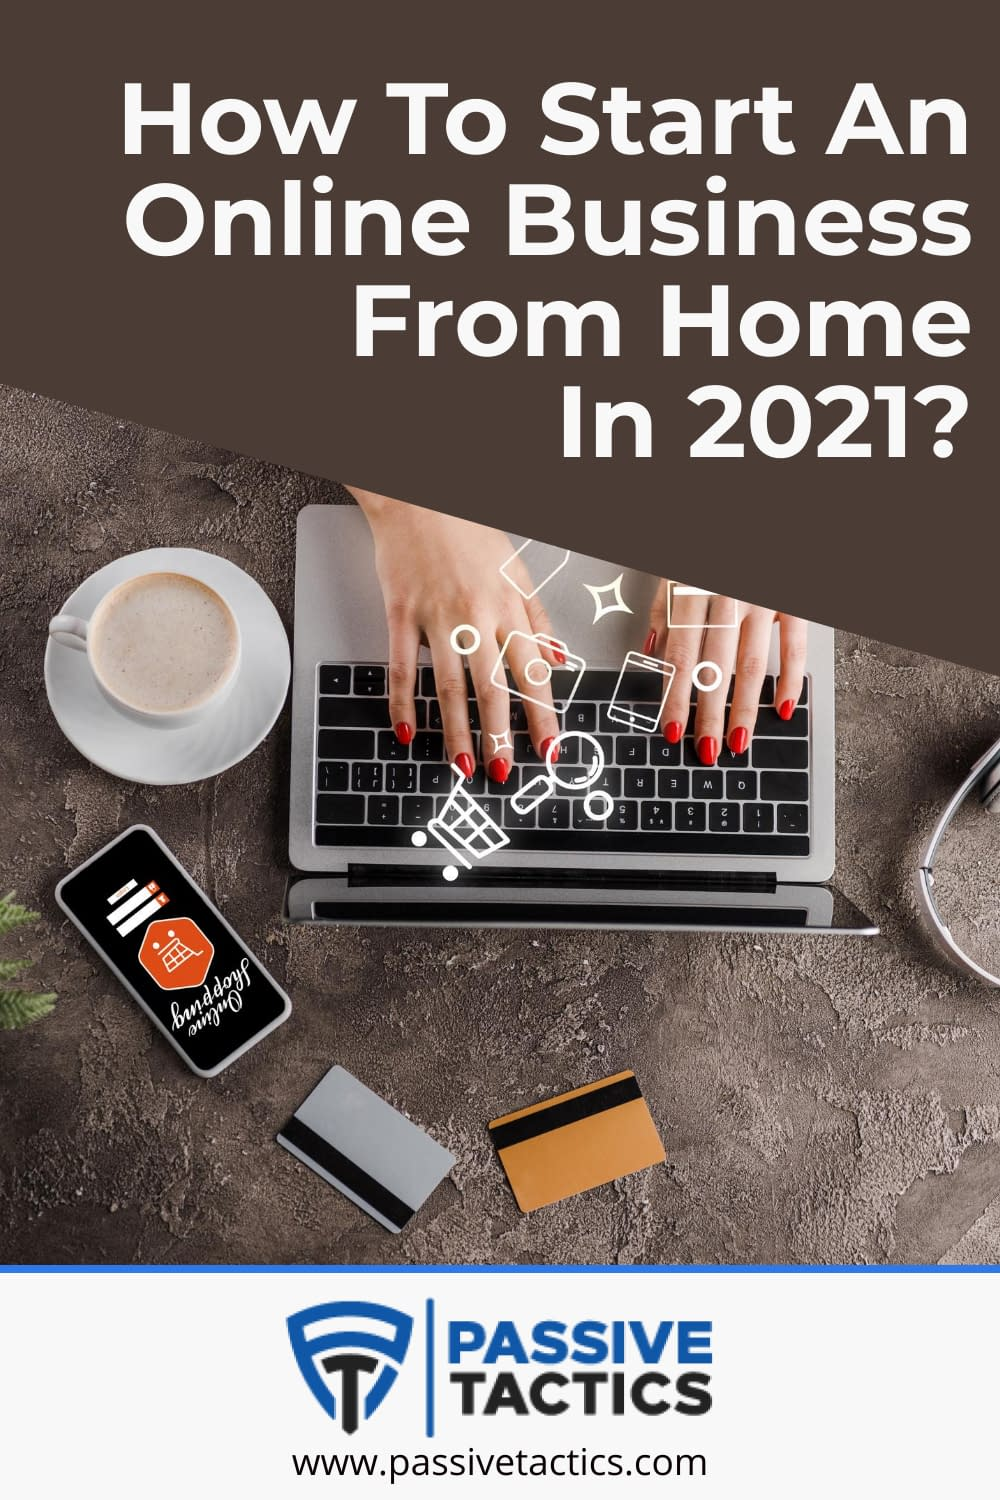 How To Start An Online Business From Home In 2021?